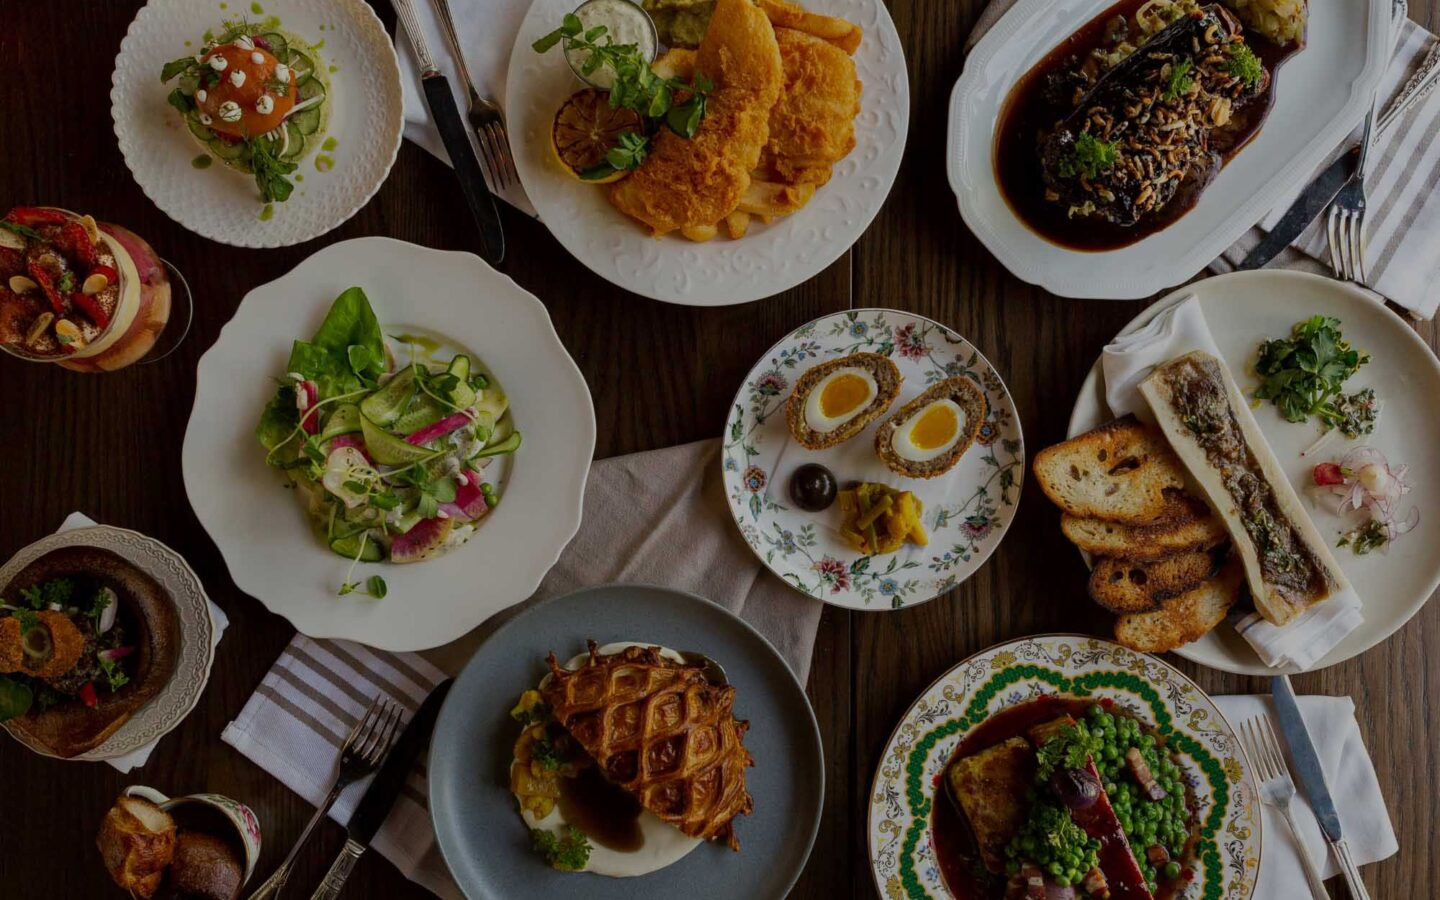 Overhead flatlay of a variety of dishes from The Rabbit Hole in Toronto